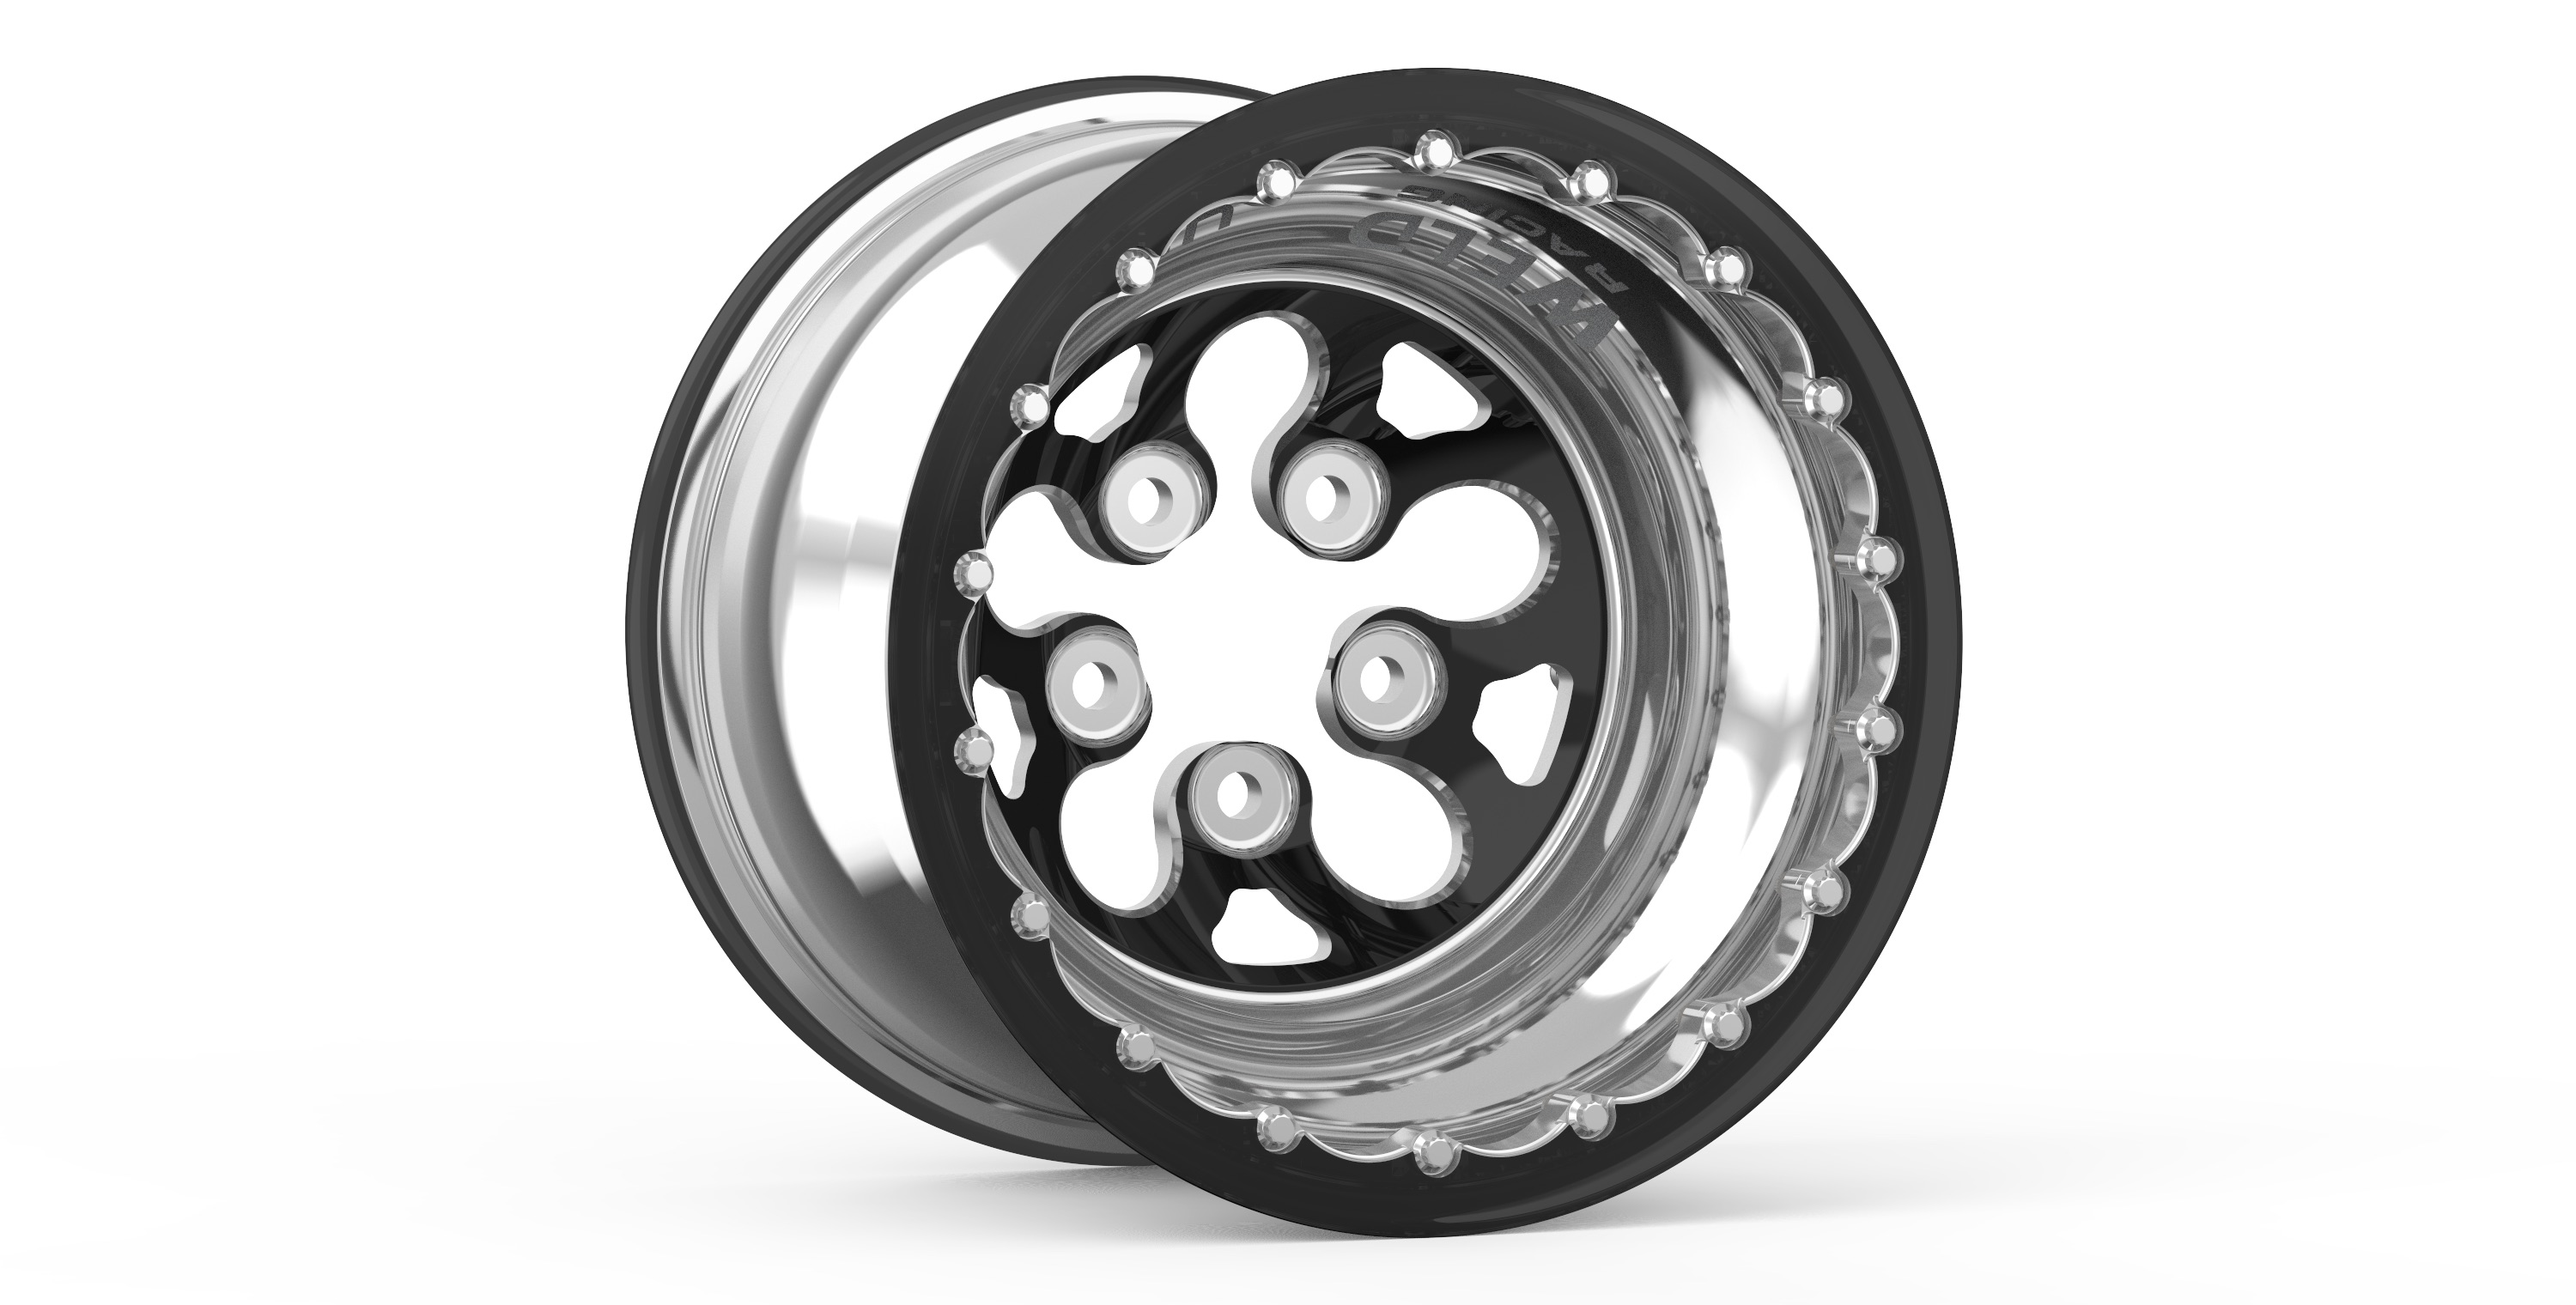 WELD Racing Releases Alpha 1 Wheel Delta Technology For Small Tire And Radial Racers